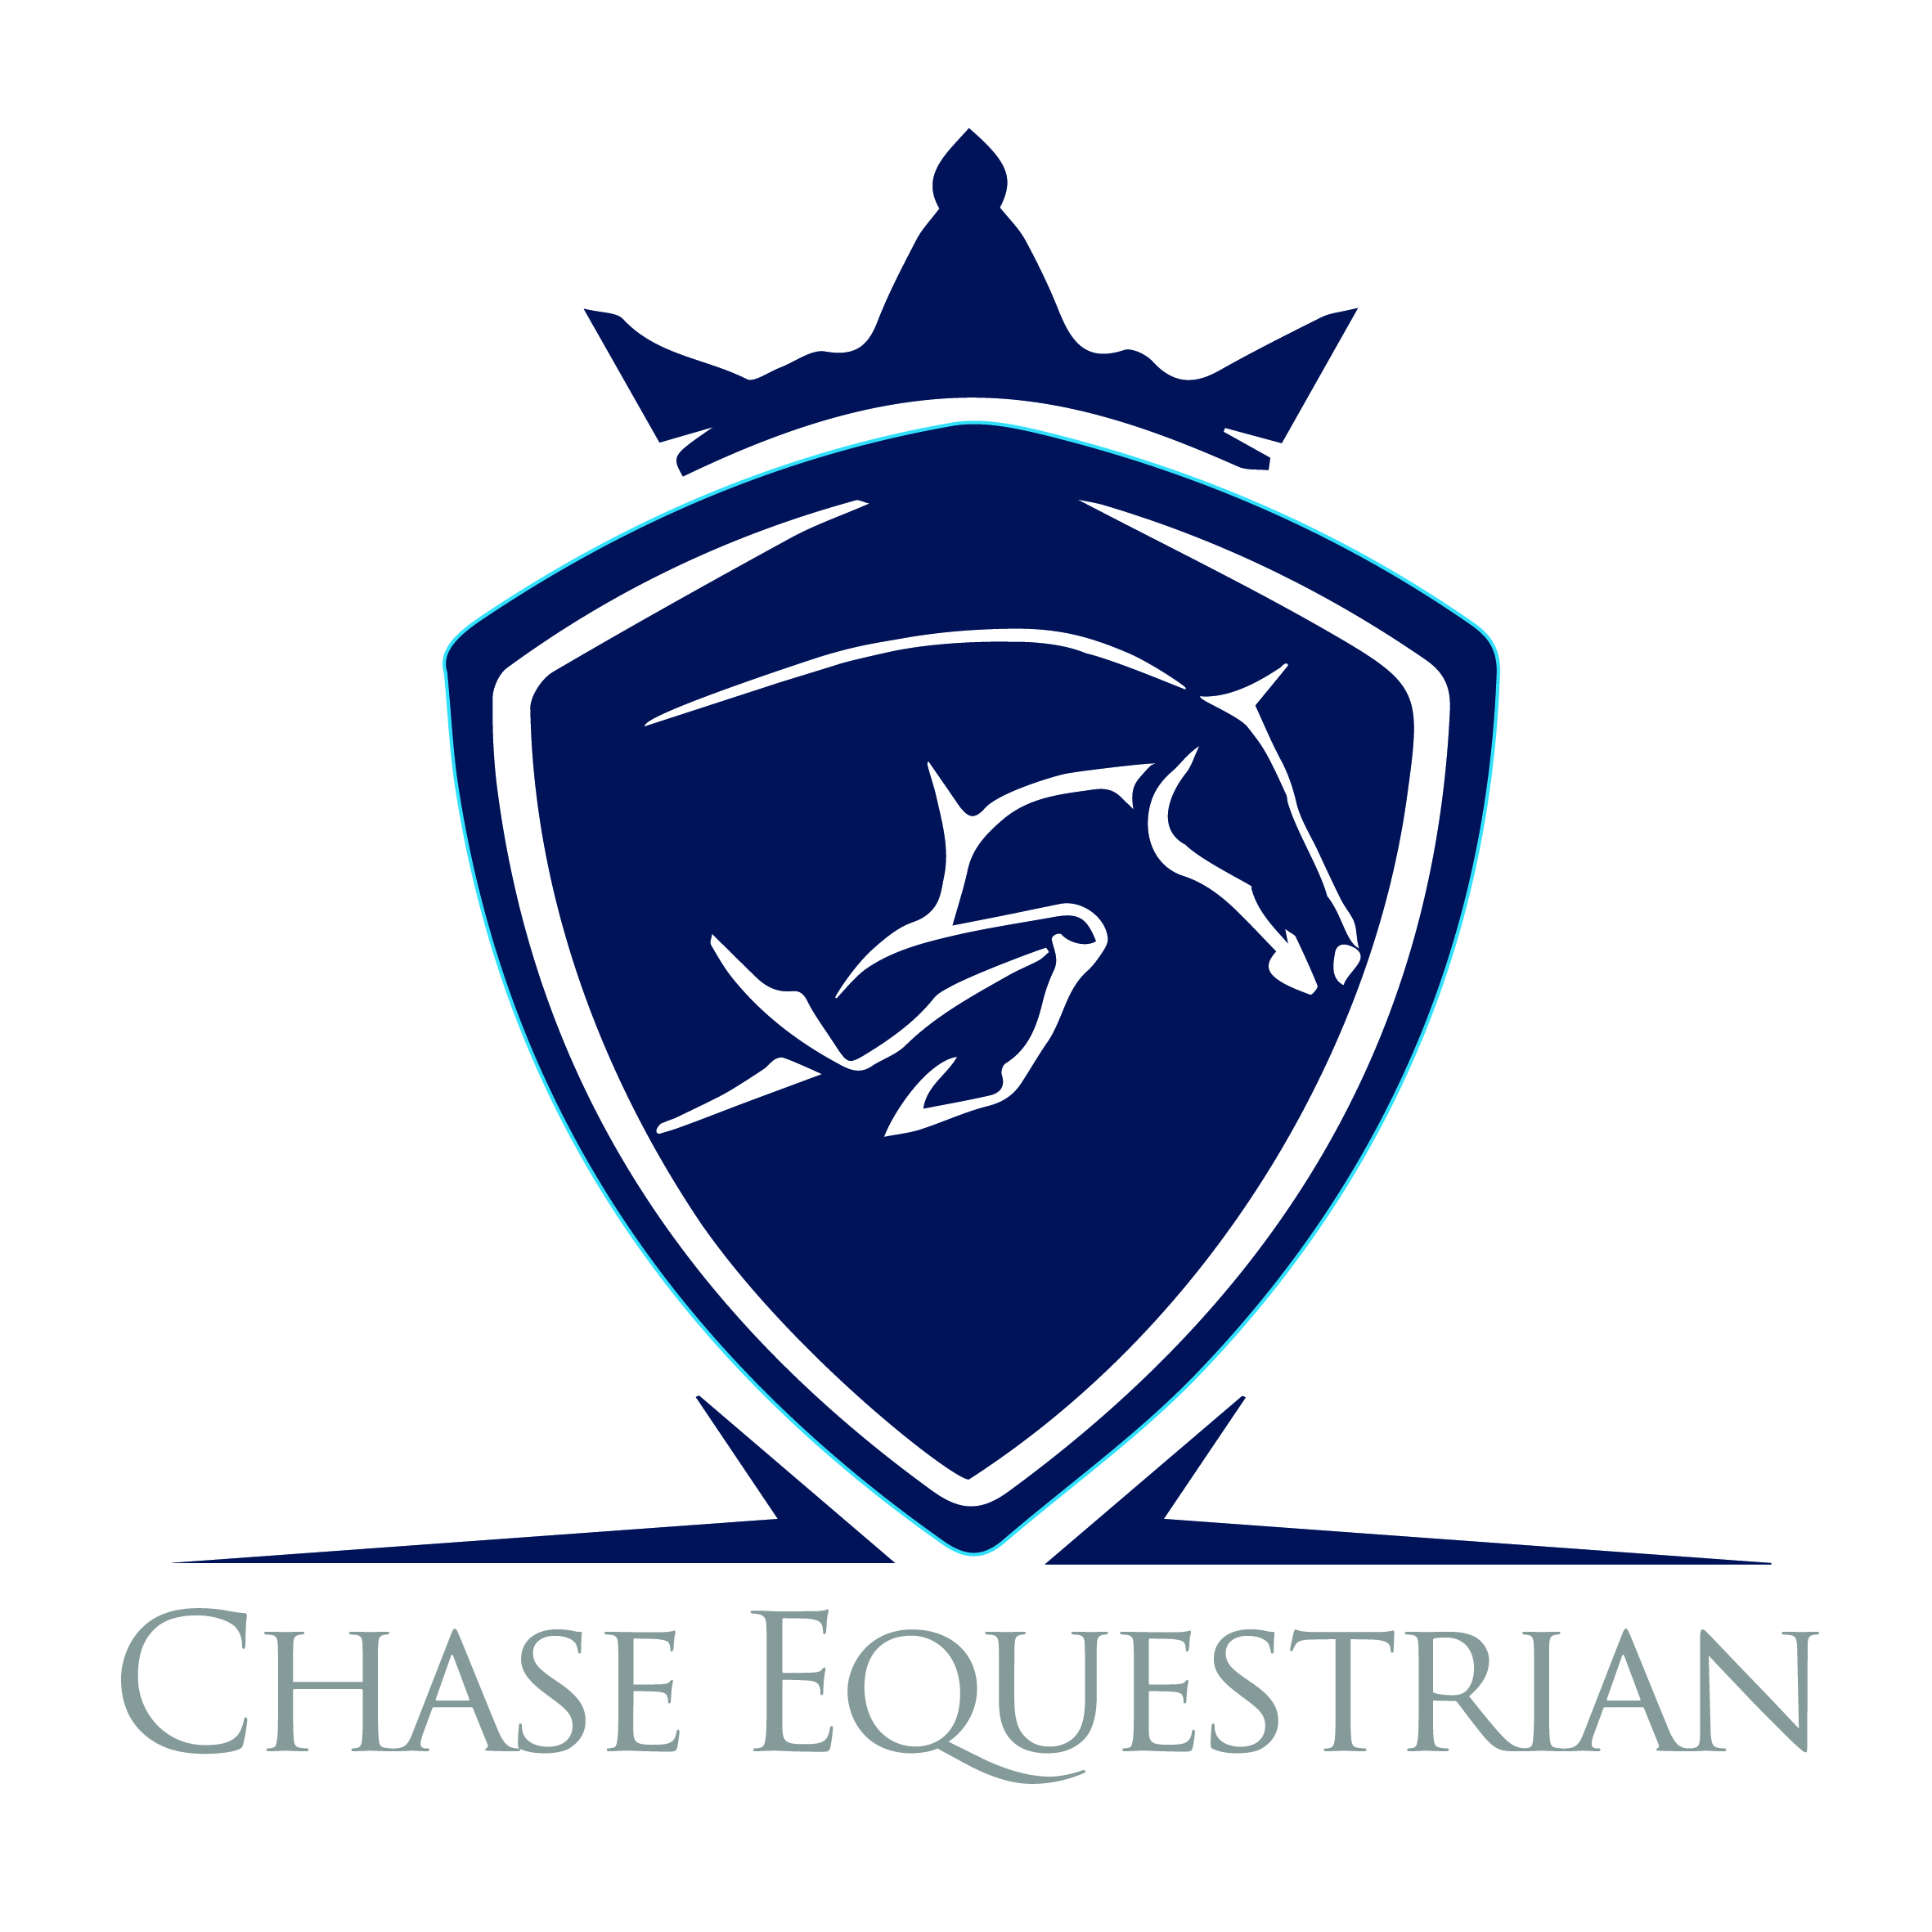 Chase Equestrian